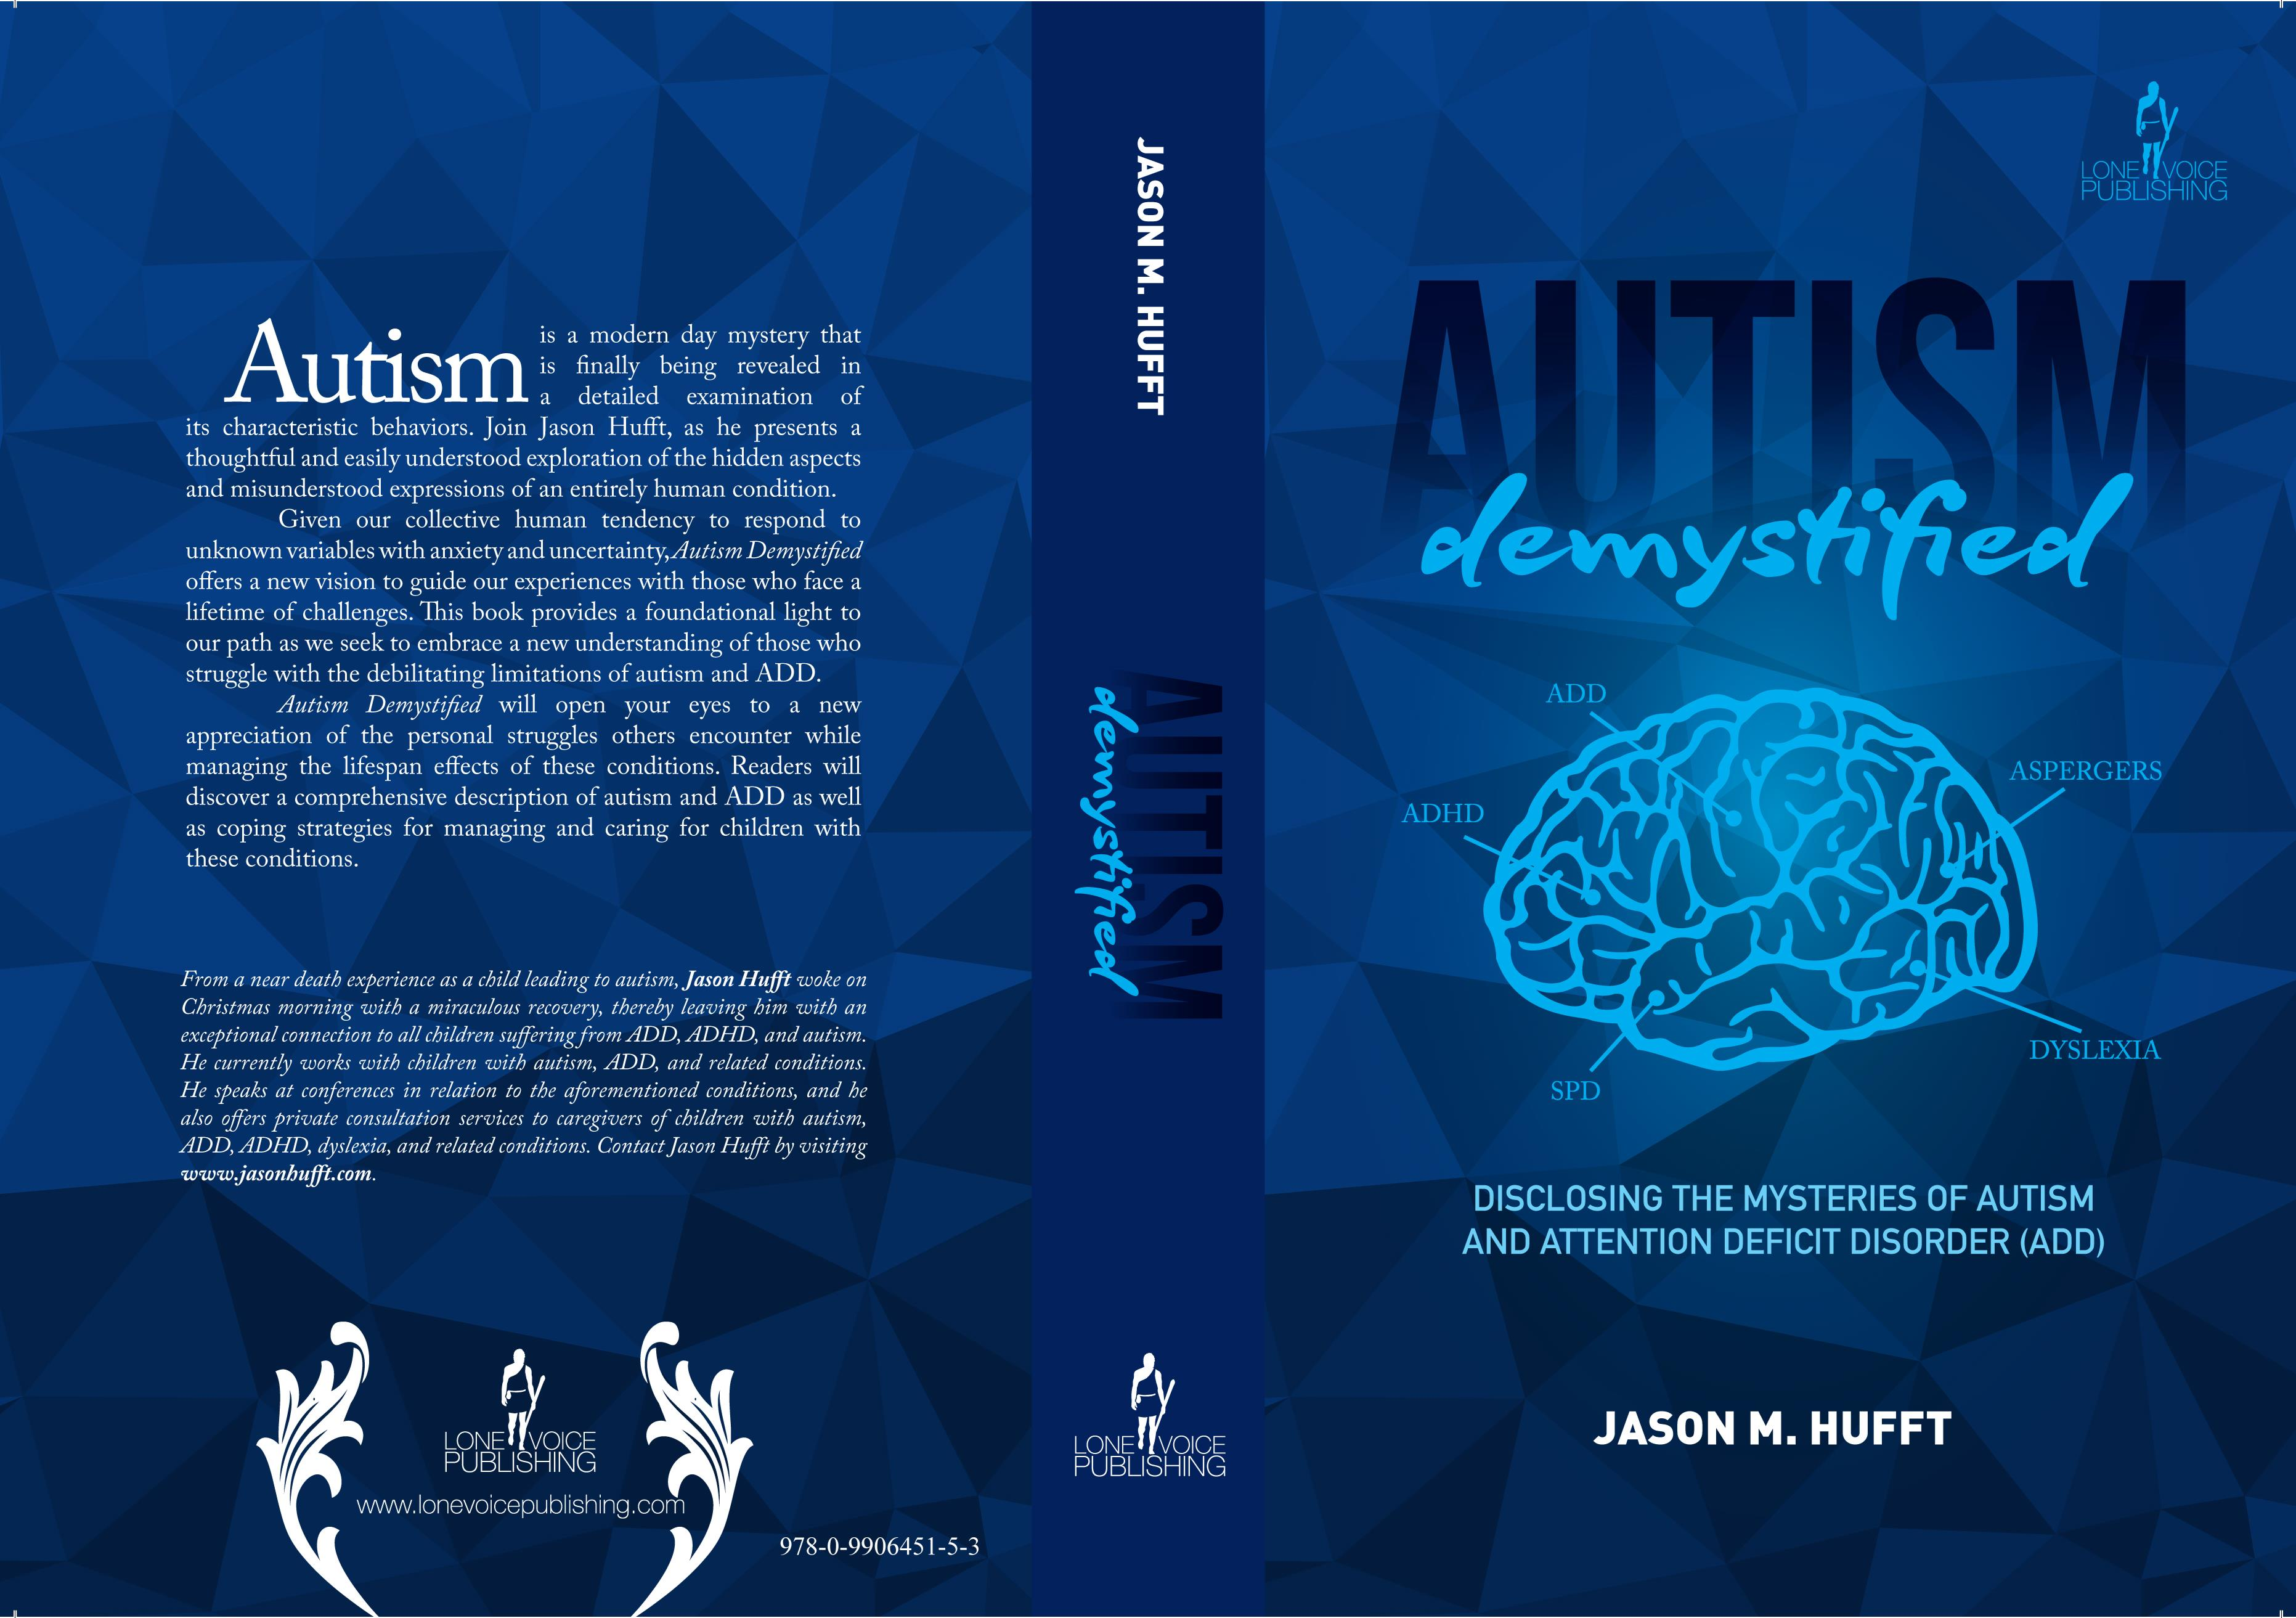 Autism Demystified cover image